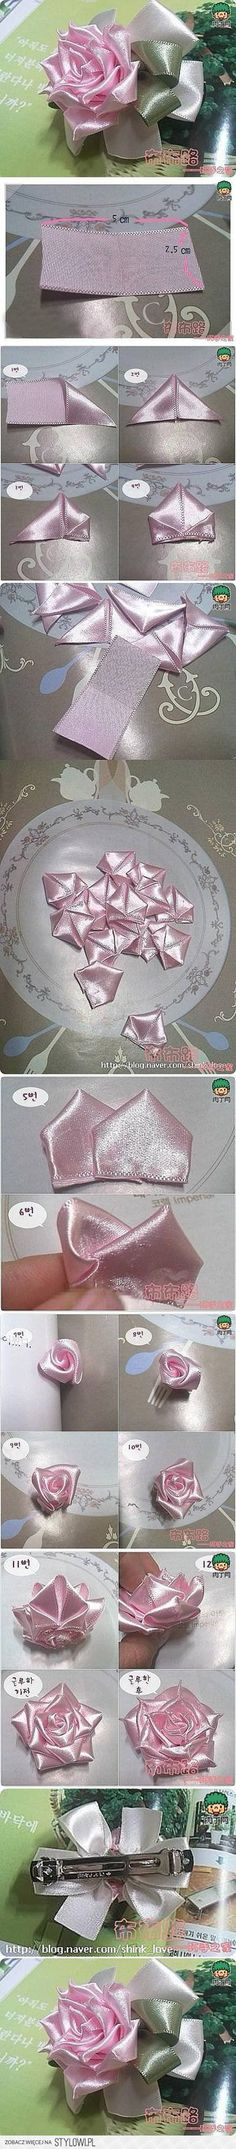 DIY Easy Satin Ribbon Rose Hairpin DIY Projects | Usefu… na Stylowi.pl